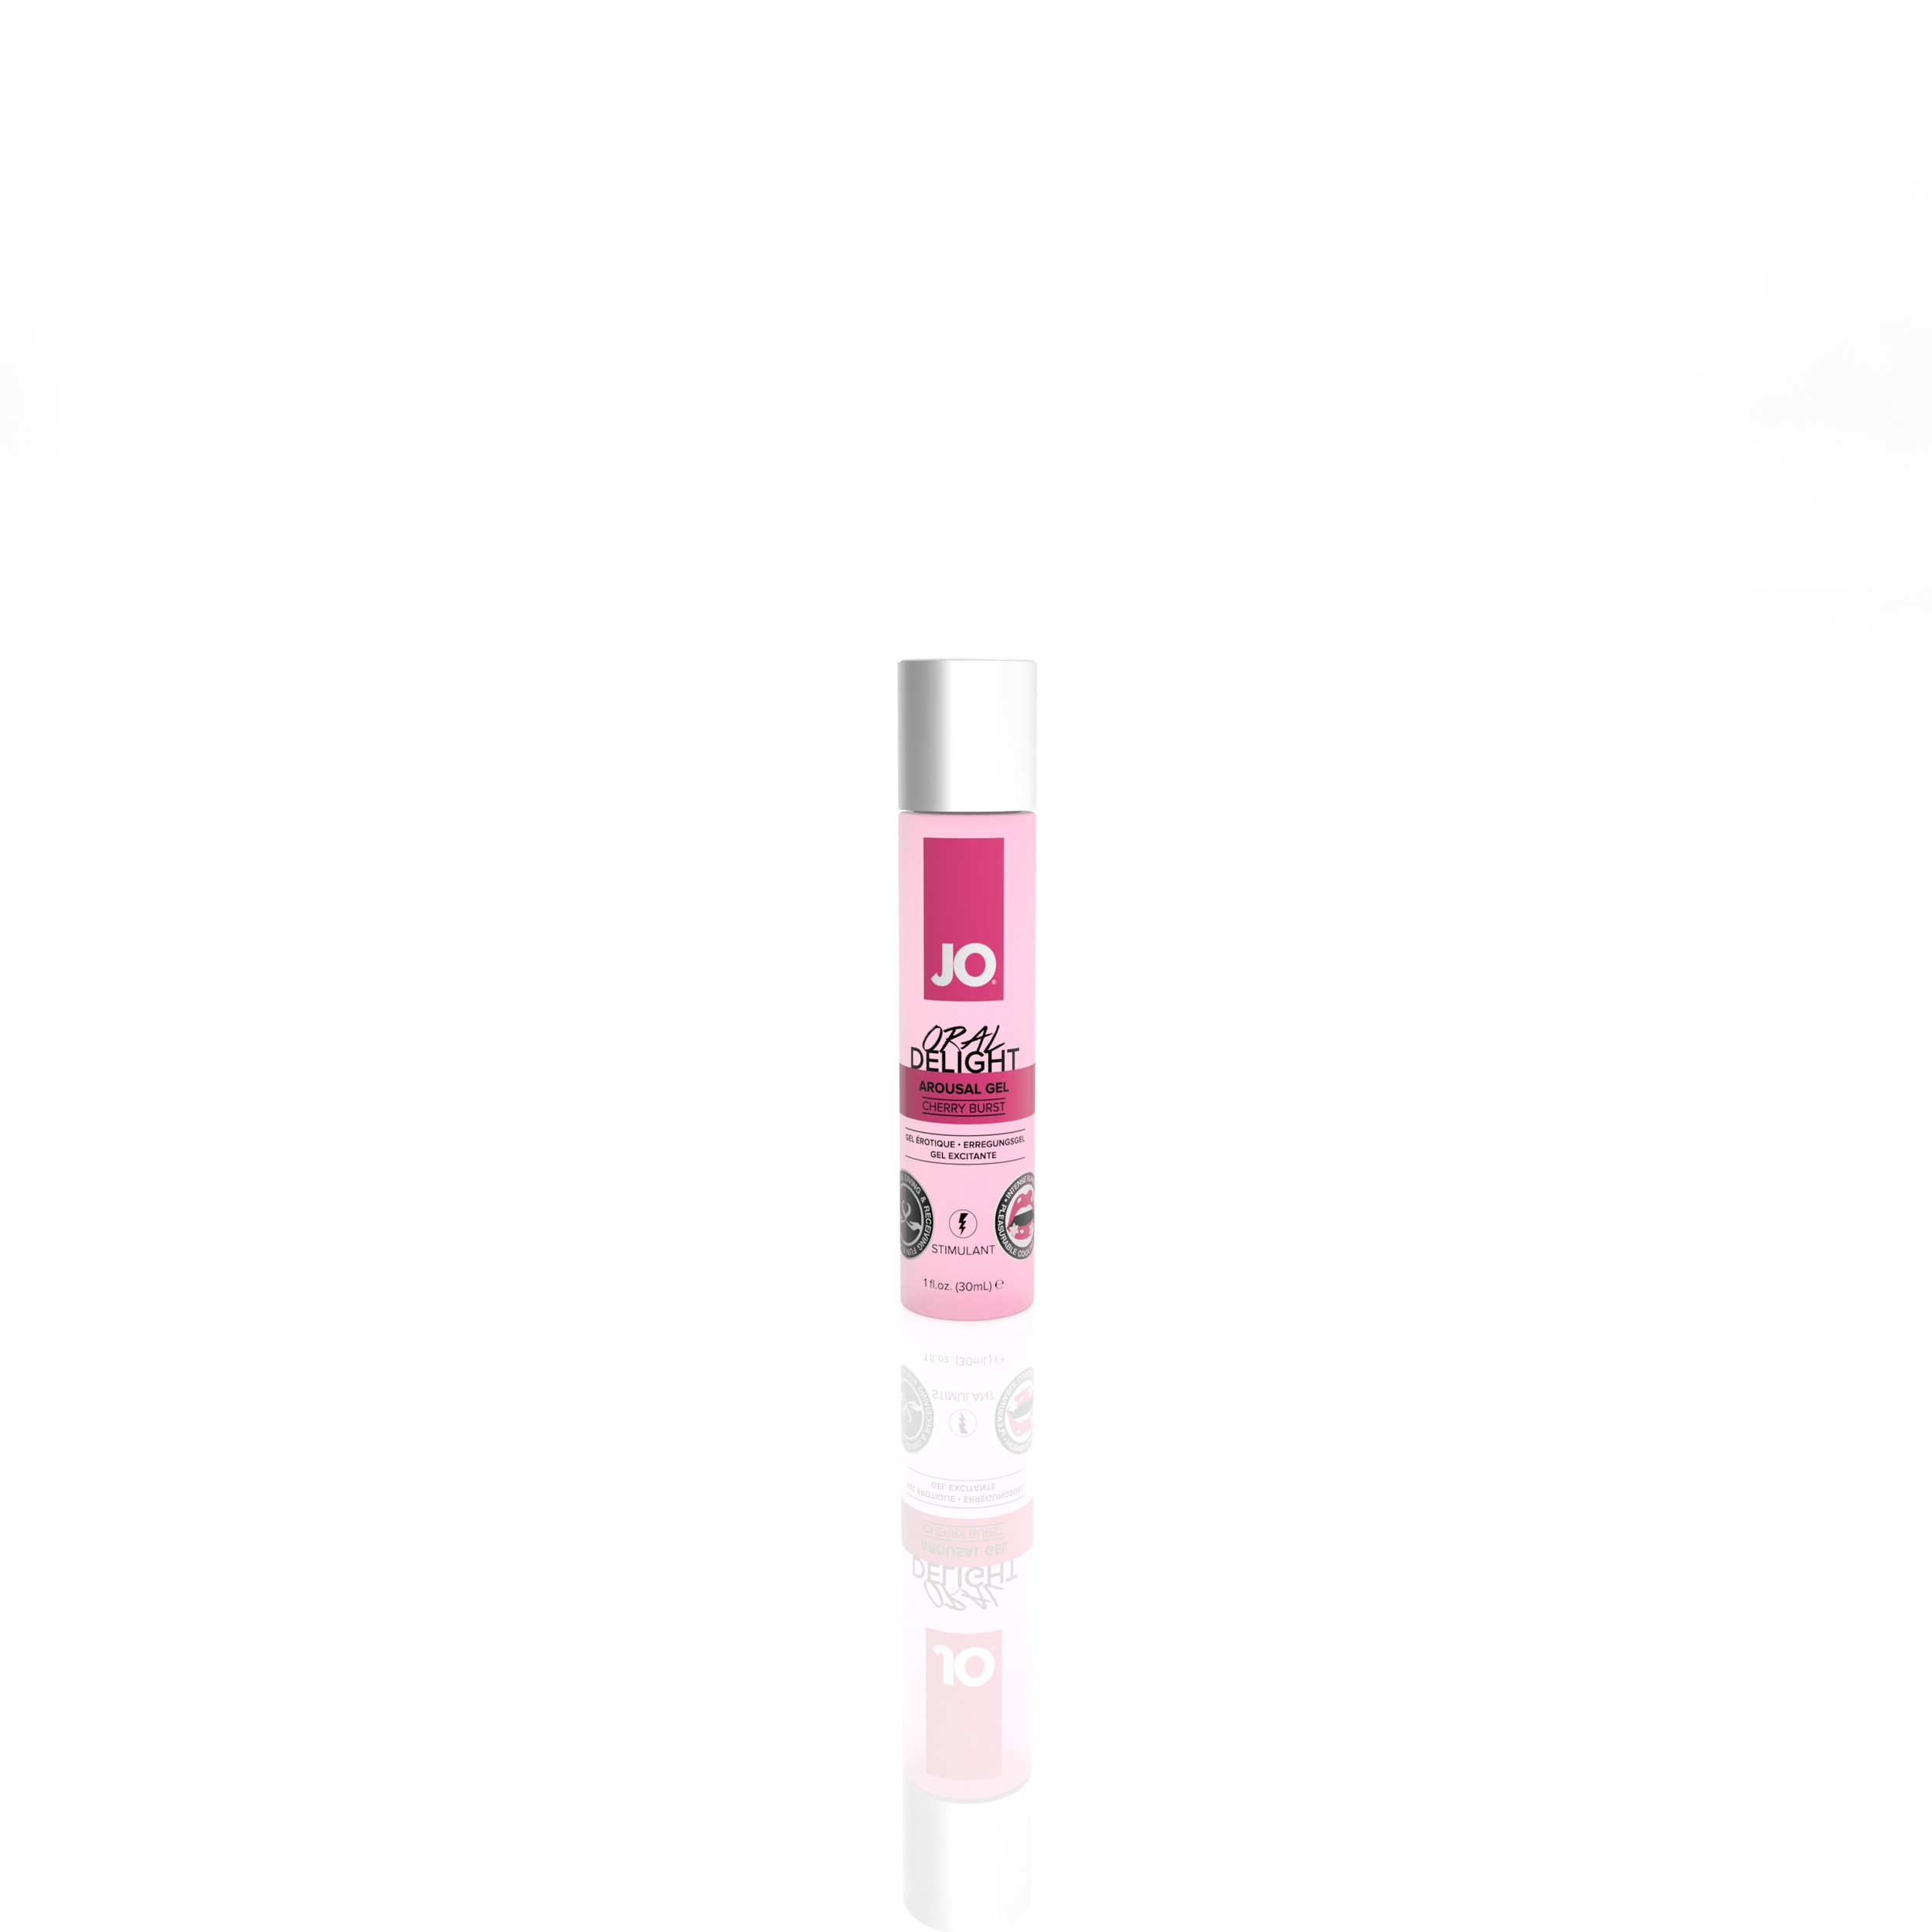 40483 - JO ORAL DELIGHT - CHERRY BURST - 1fl.oz 30mL Bottle.jpg